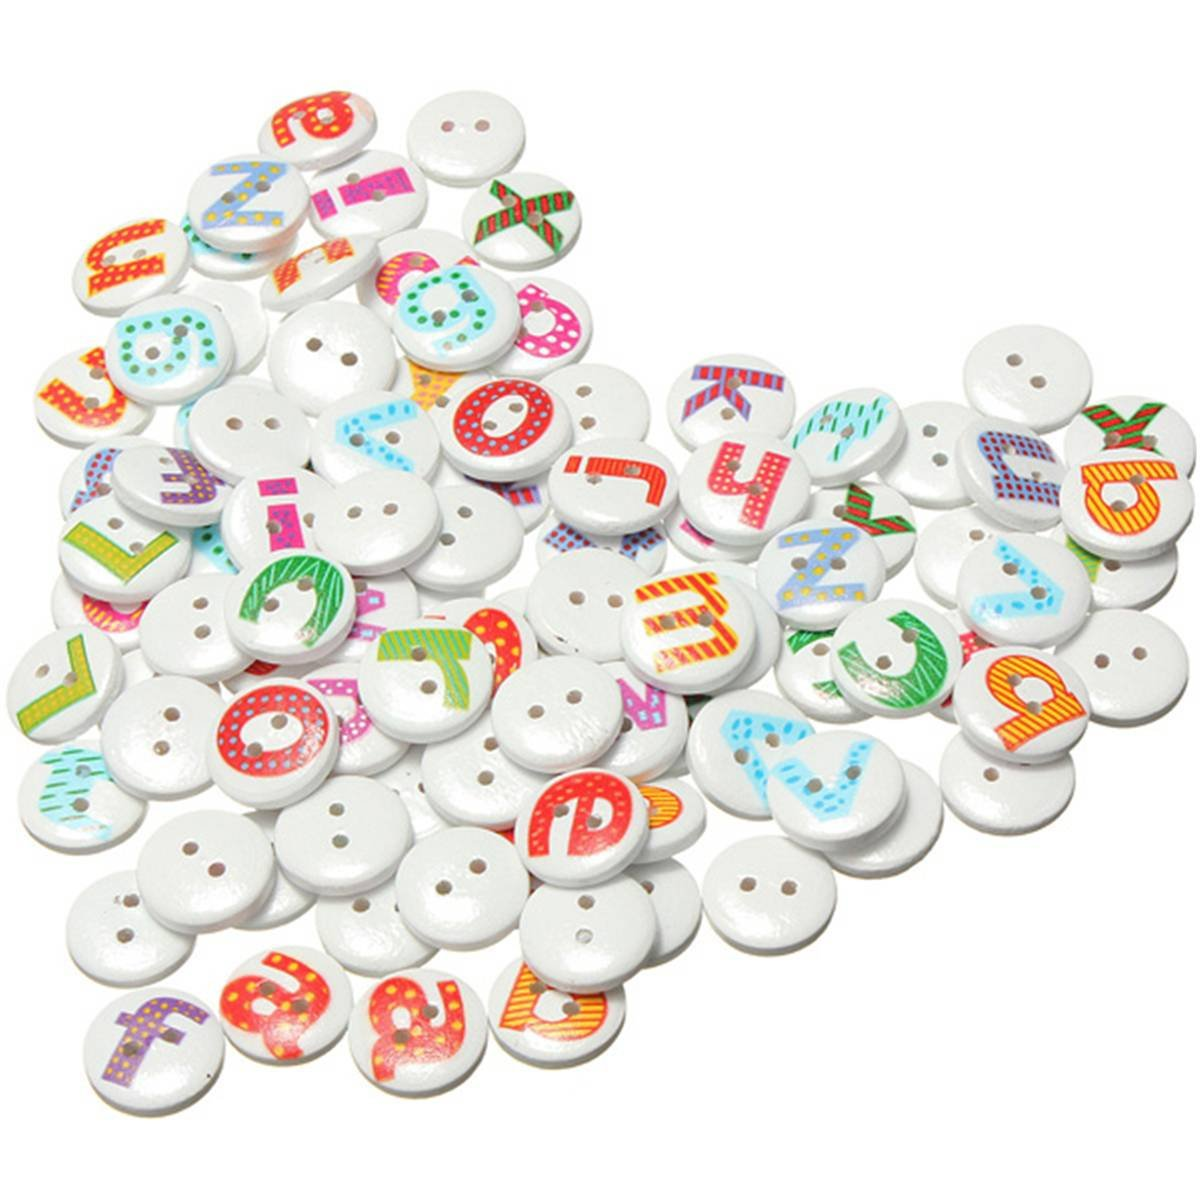 LHBL 100Pcs Mixed Painted Letter Alphabet Wooden Sewing Button Scrapbooking(sent in random letter)